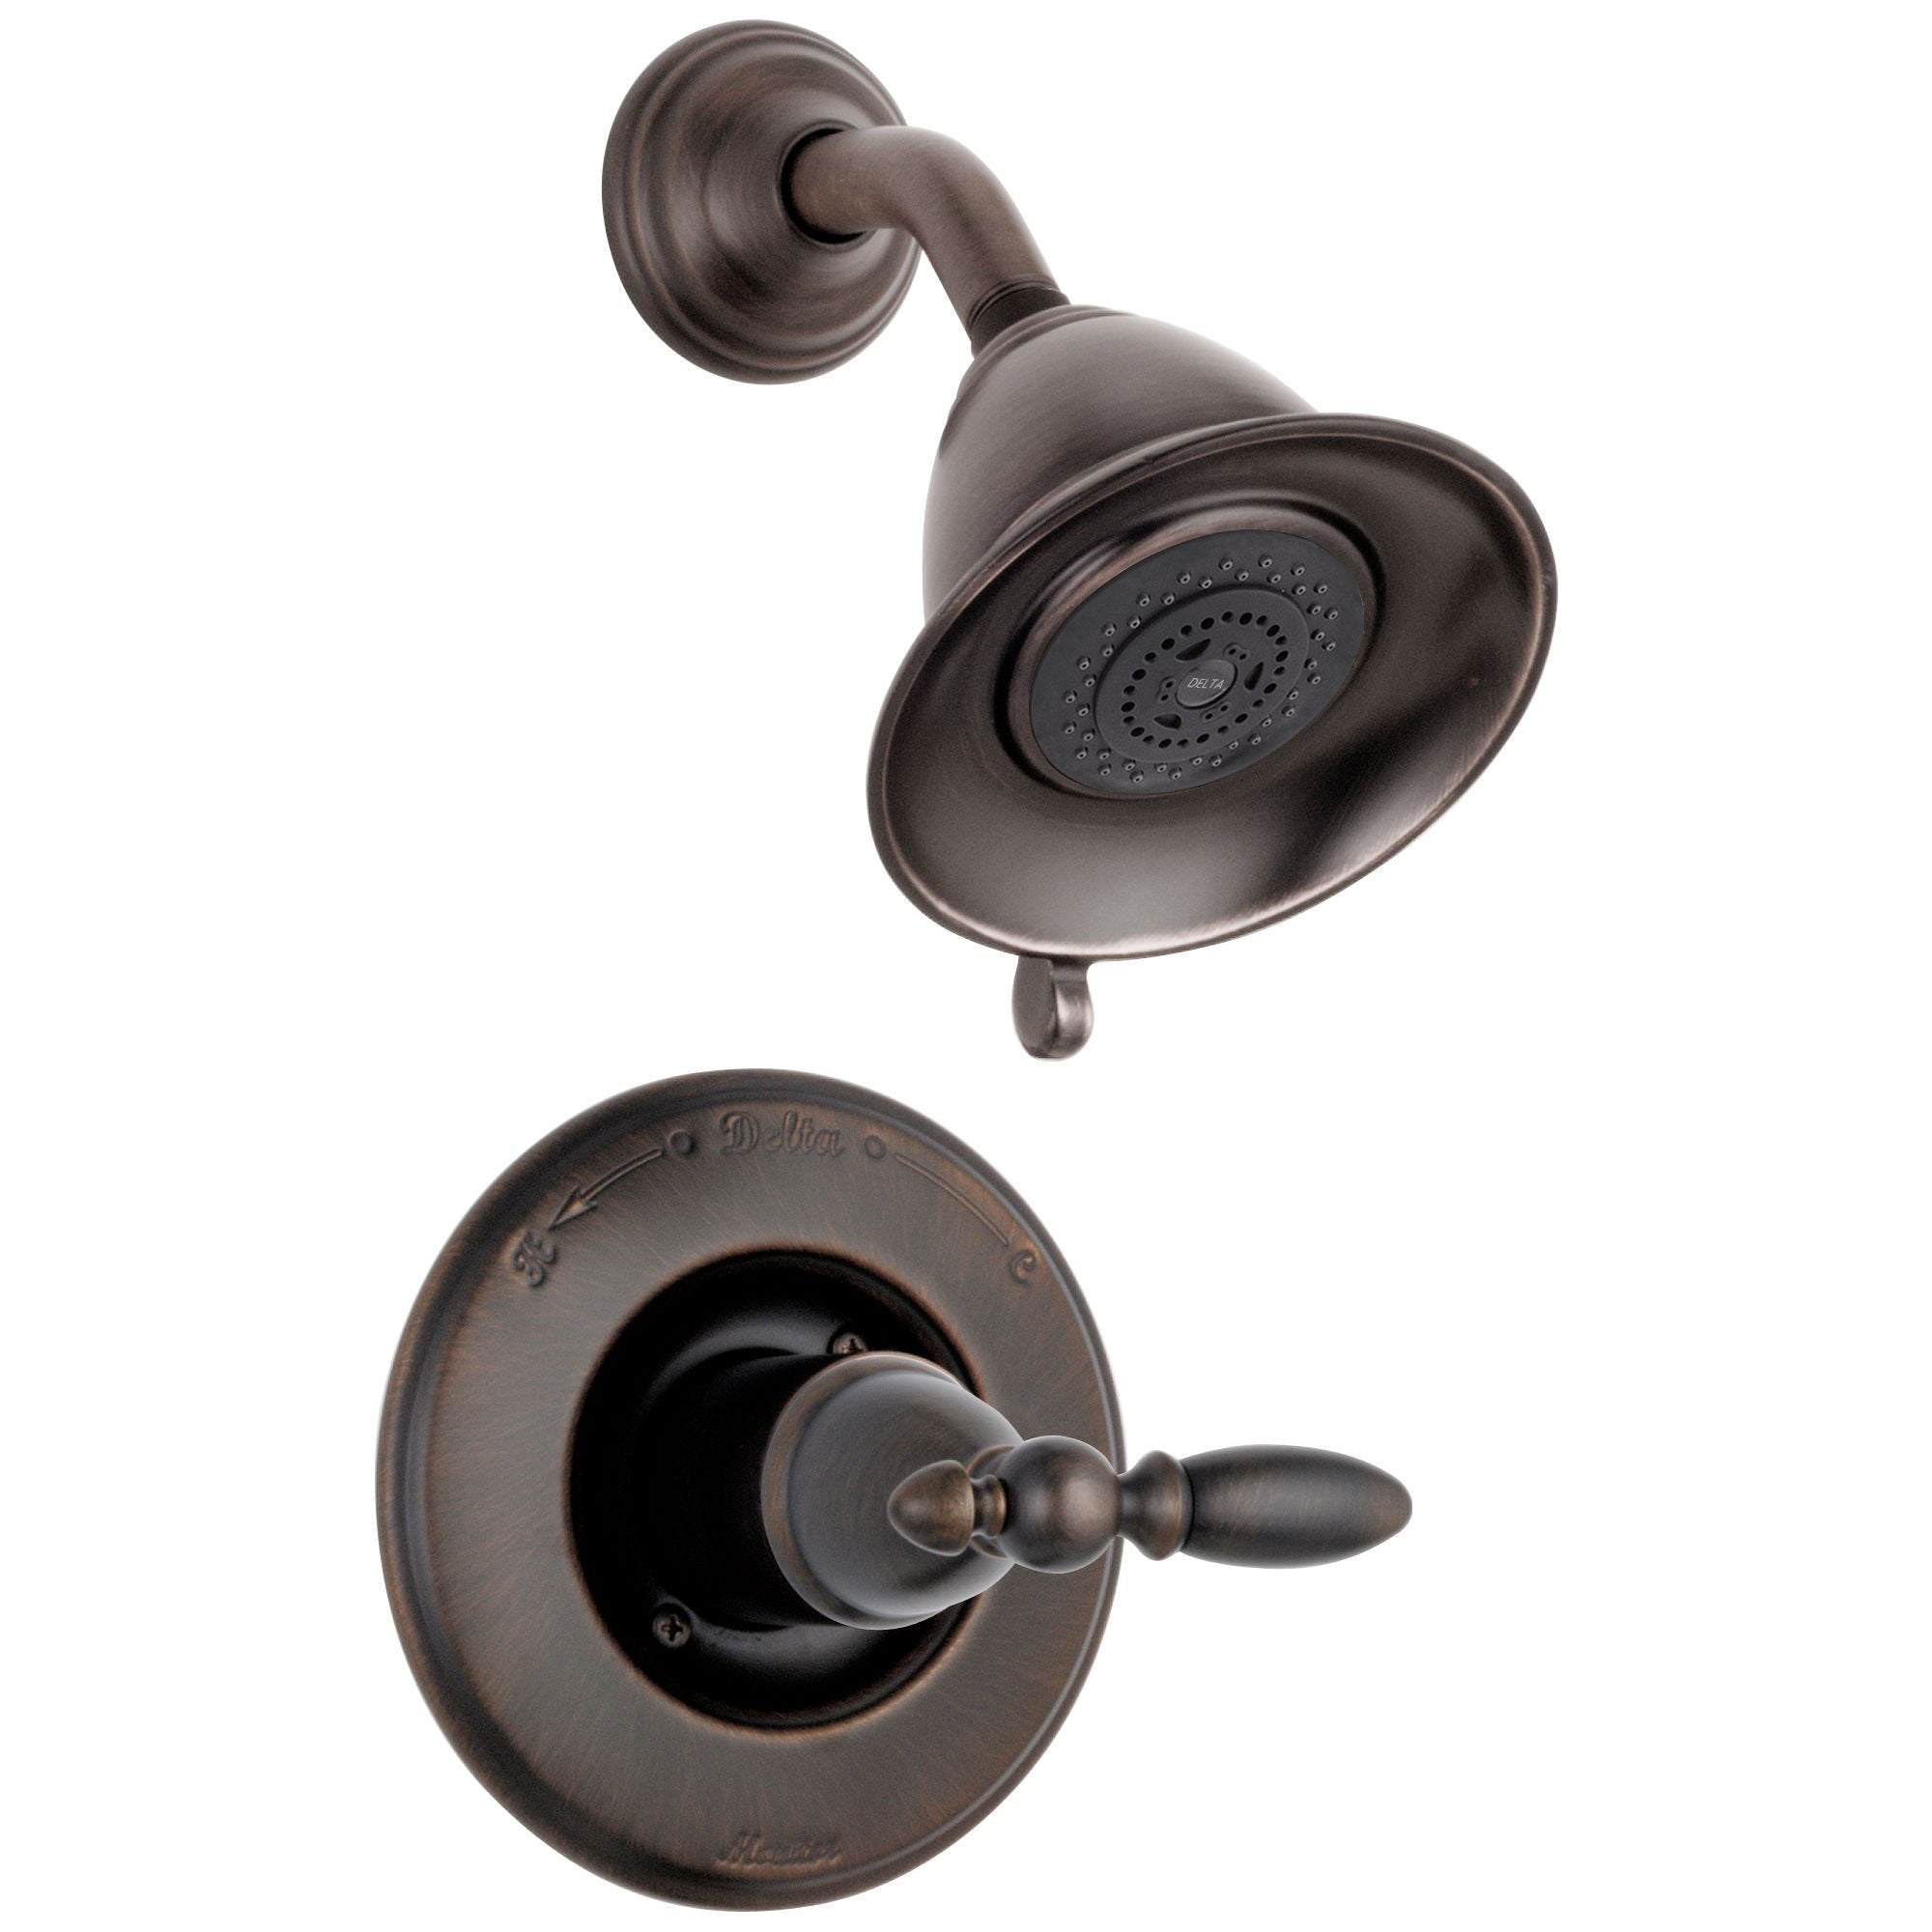 Delta Traditional Victorian Venetian Bronze Finish 14 Series Shower Only Faucet INCLUDES Rough-in Valve and Single Lever Handle D1198V